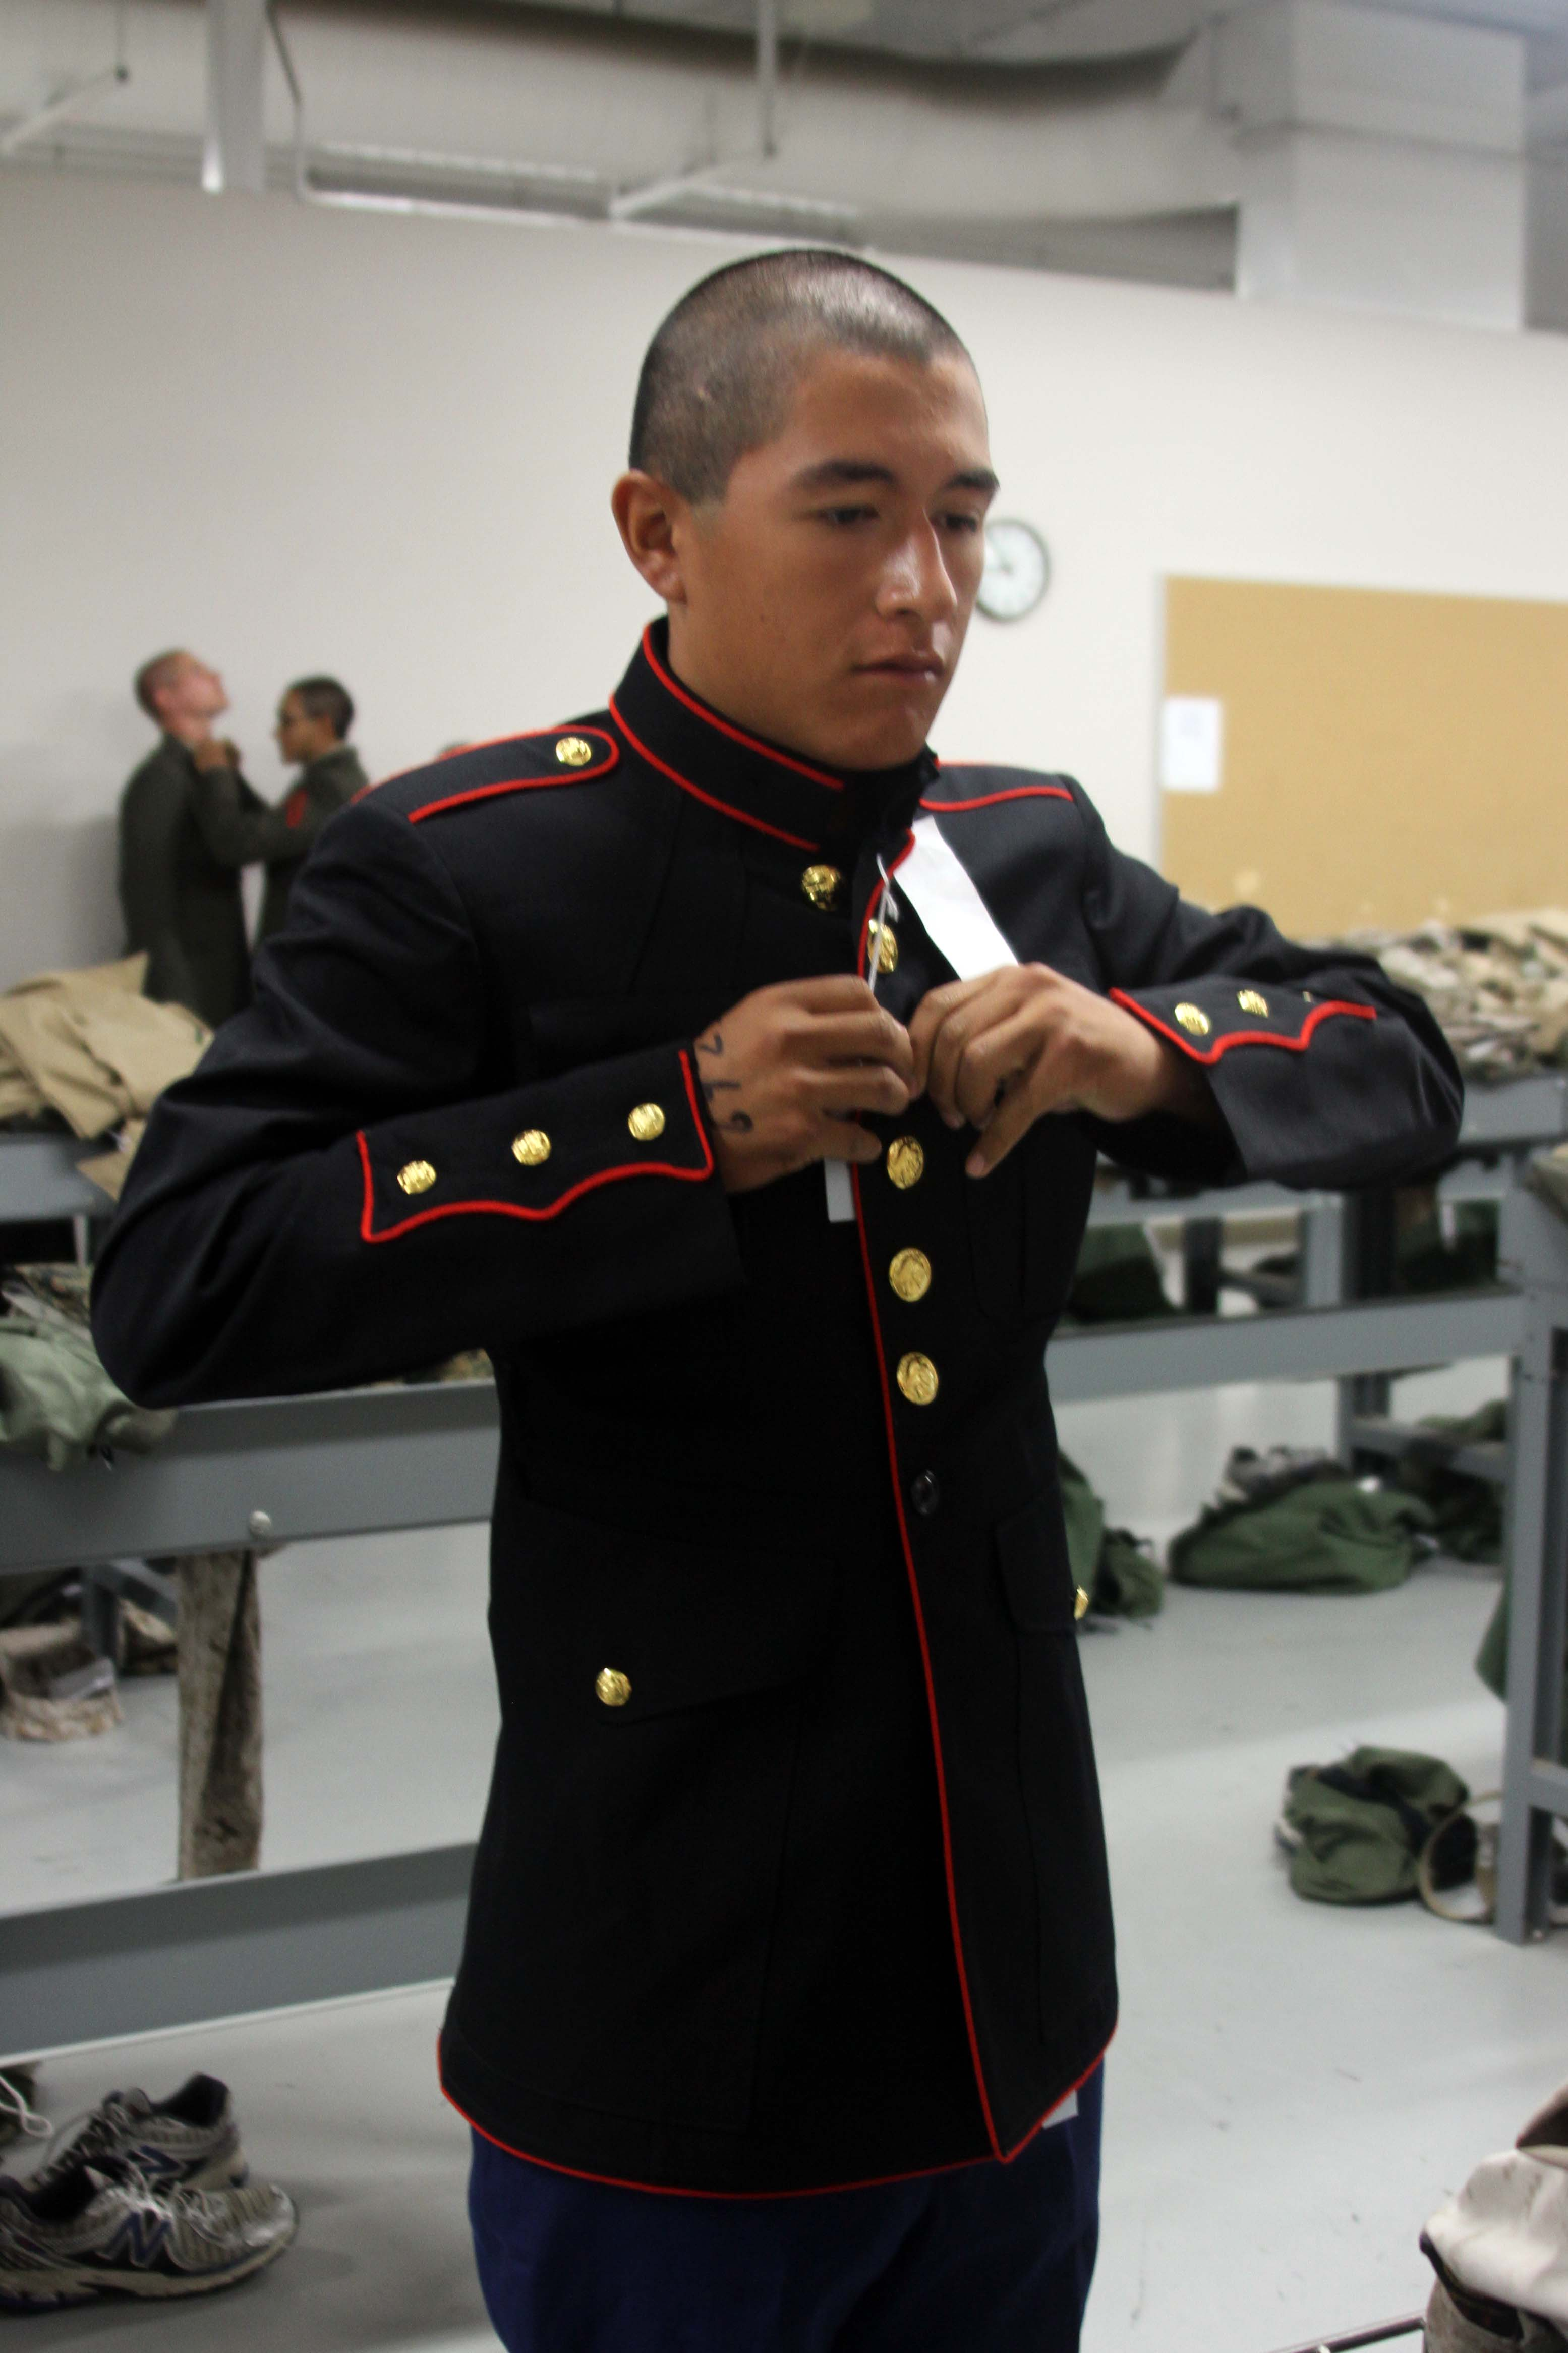 With Uniform Comes Pride Marine Corps Recruit Depot San Diego News